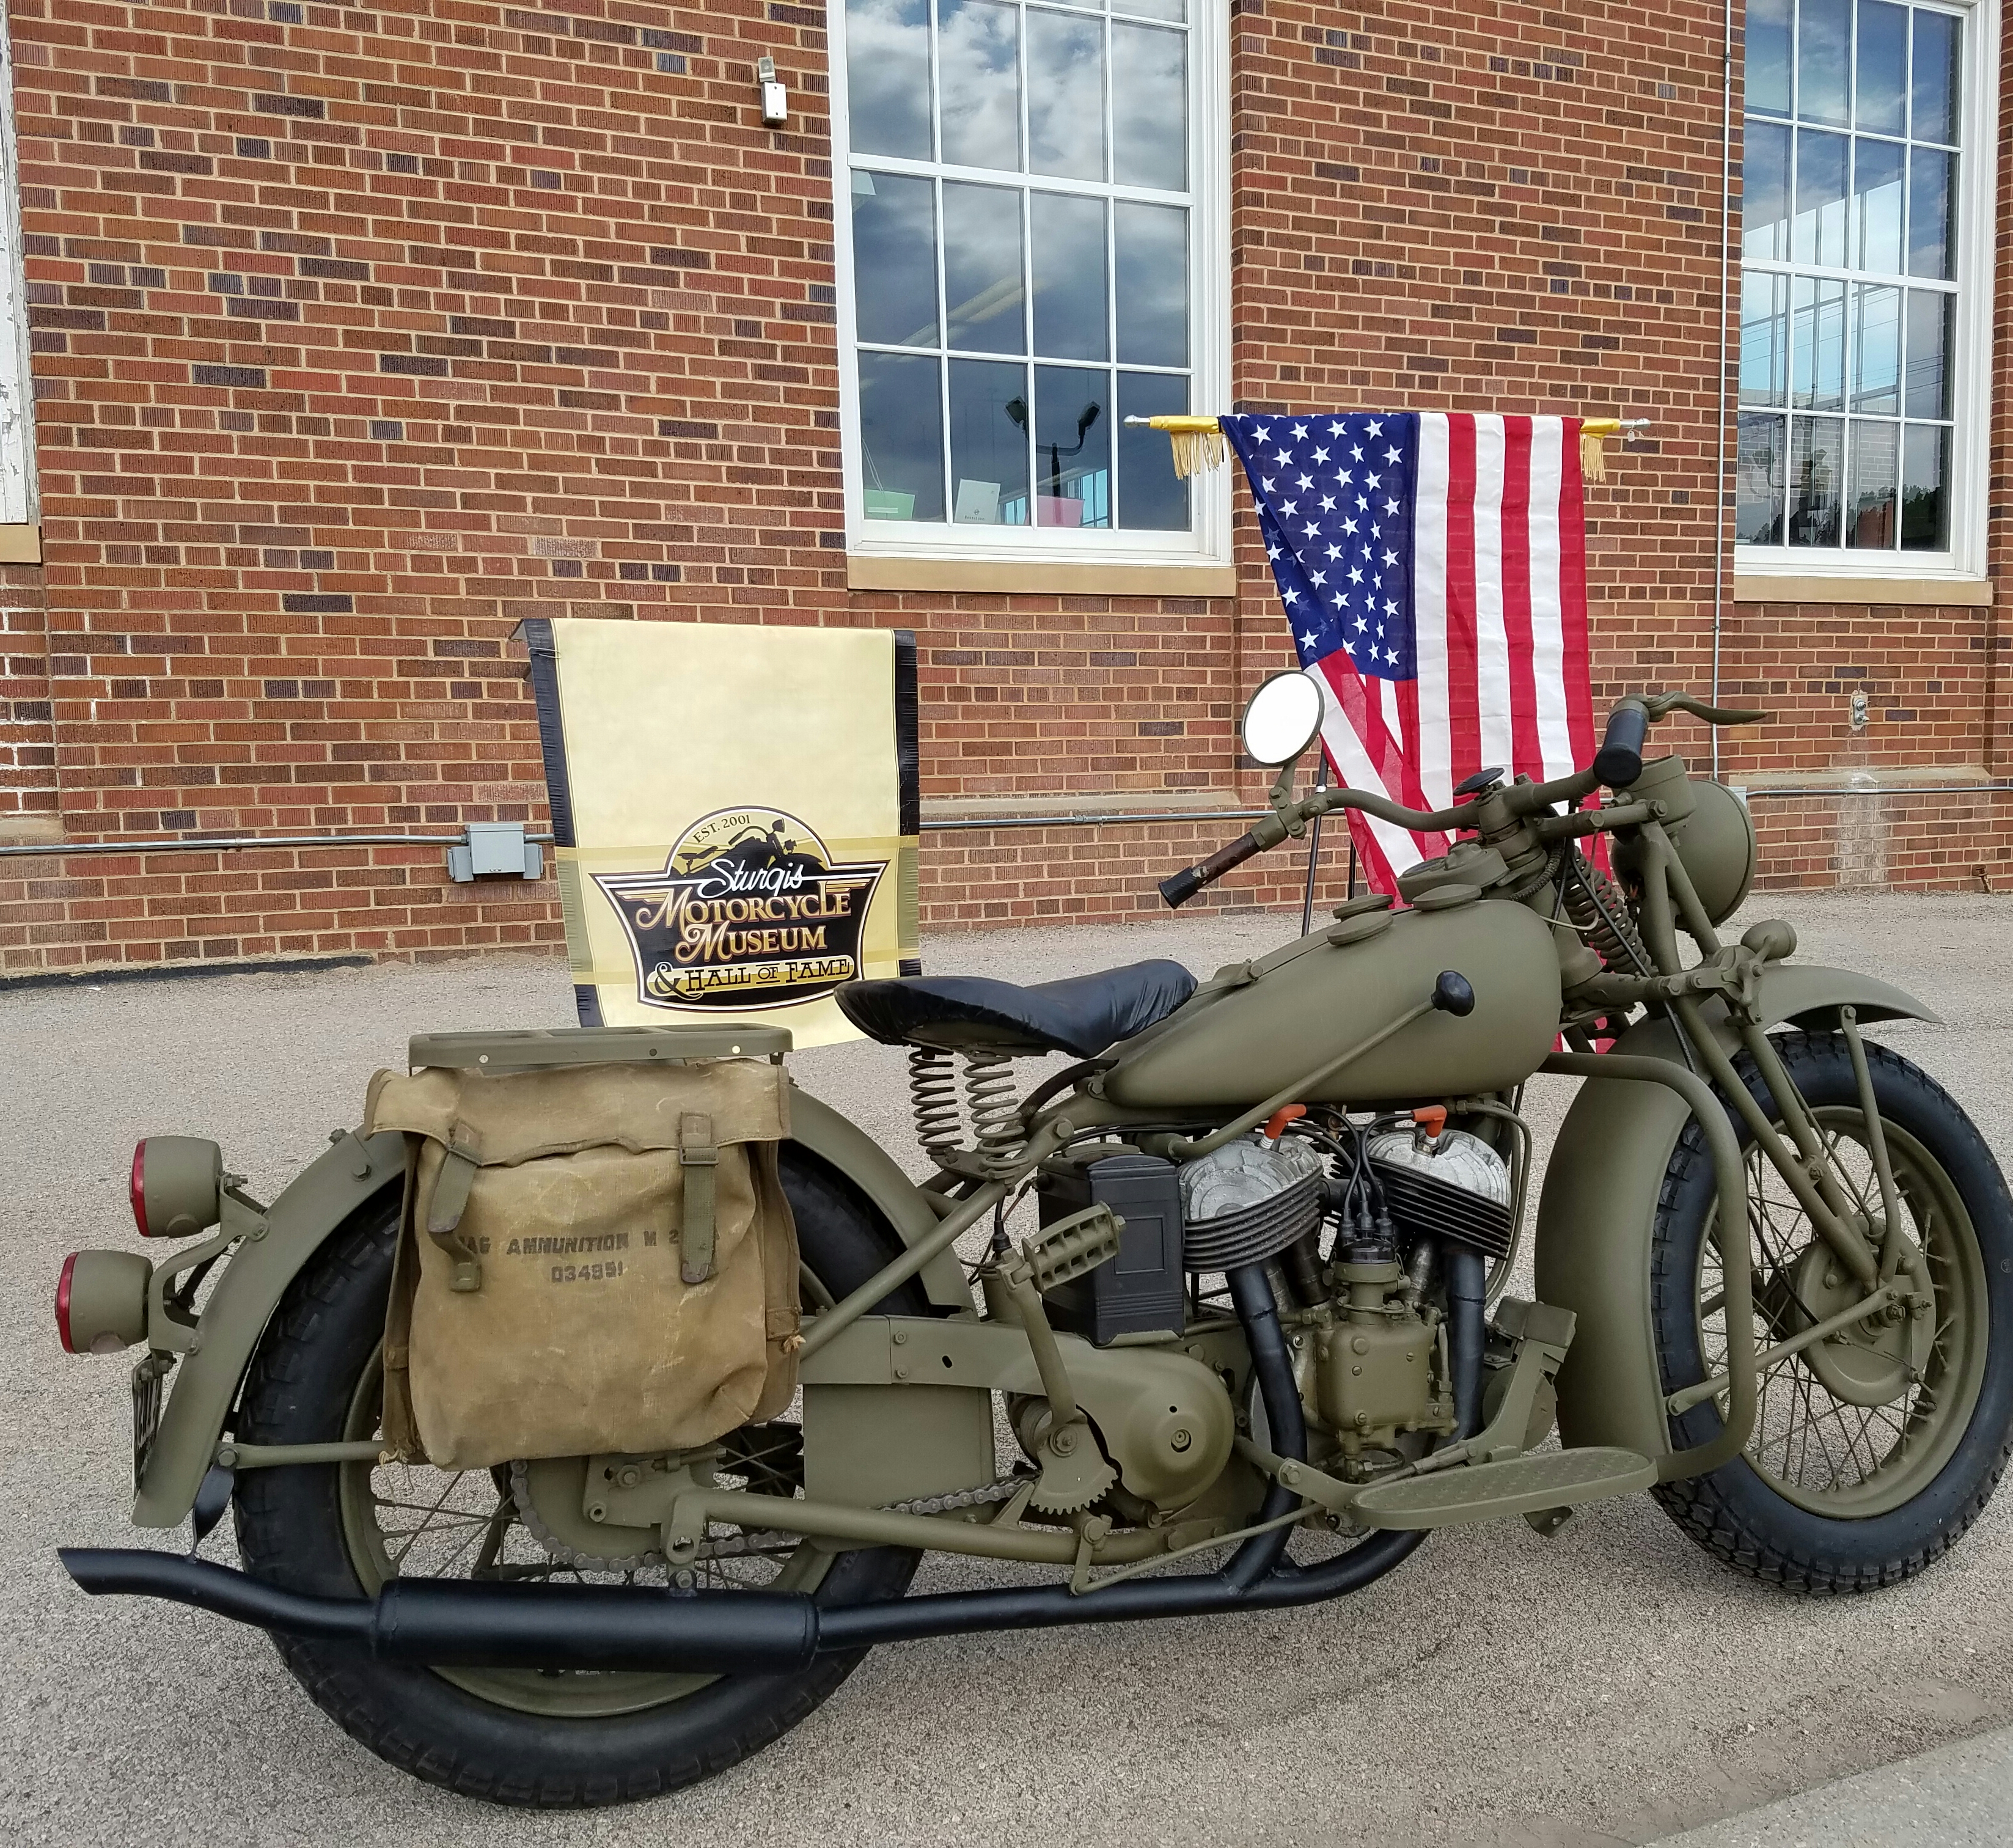 Sturgis Motocycle Museum Honor Ride